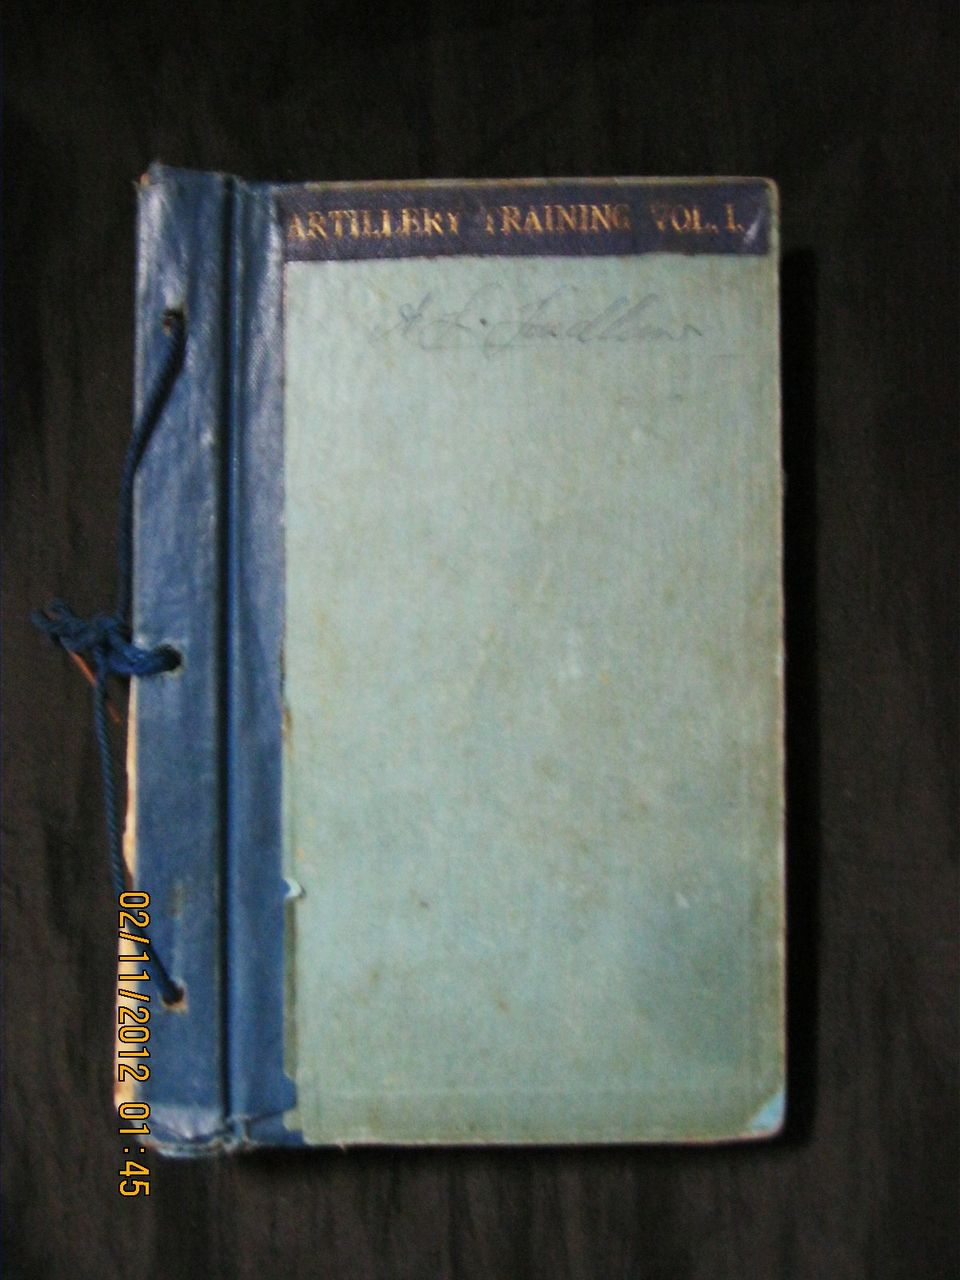 WWII ARTILLERY Training Manuals Volume One - 7 Pamphlets Total